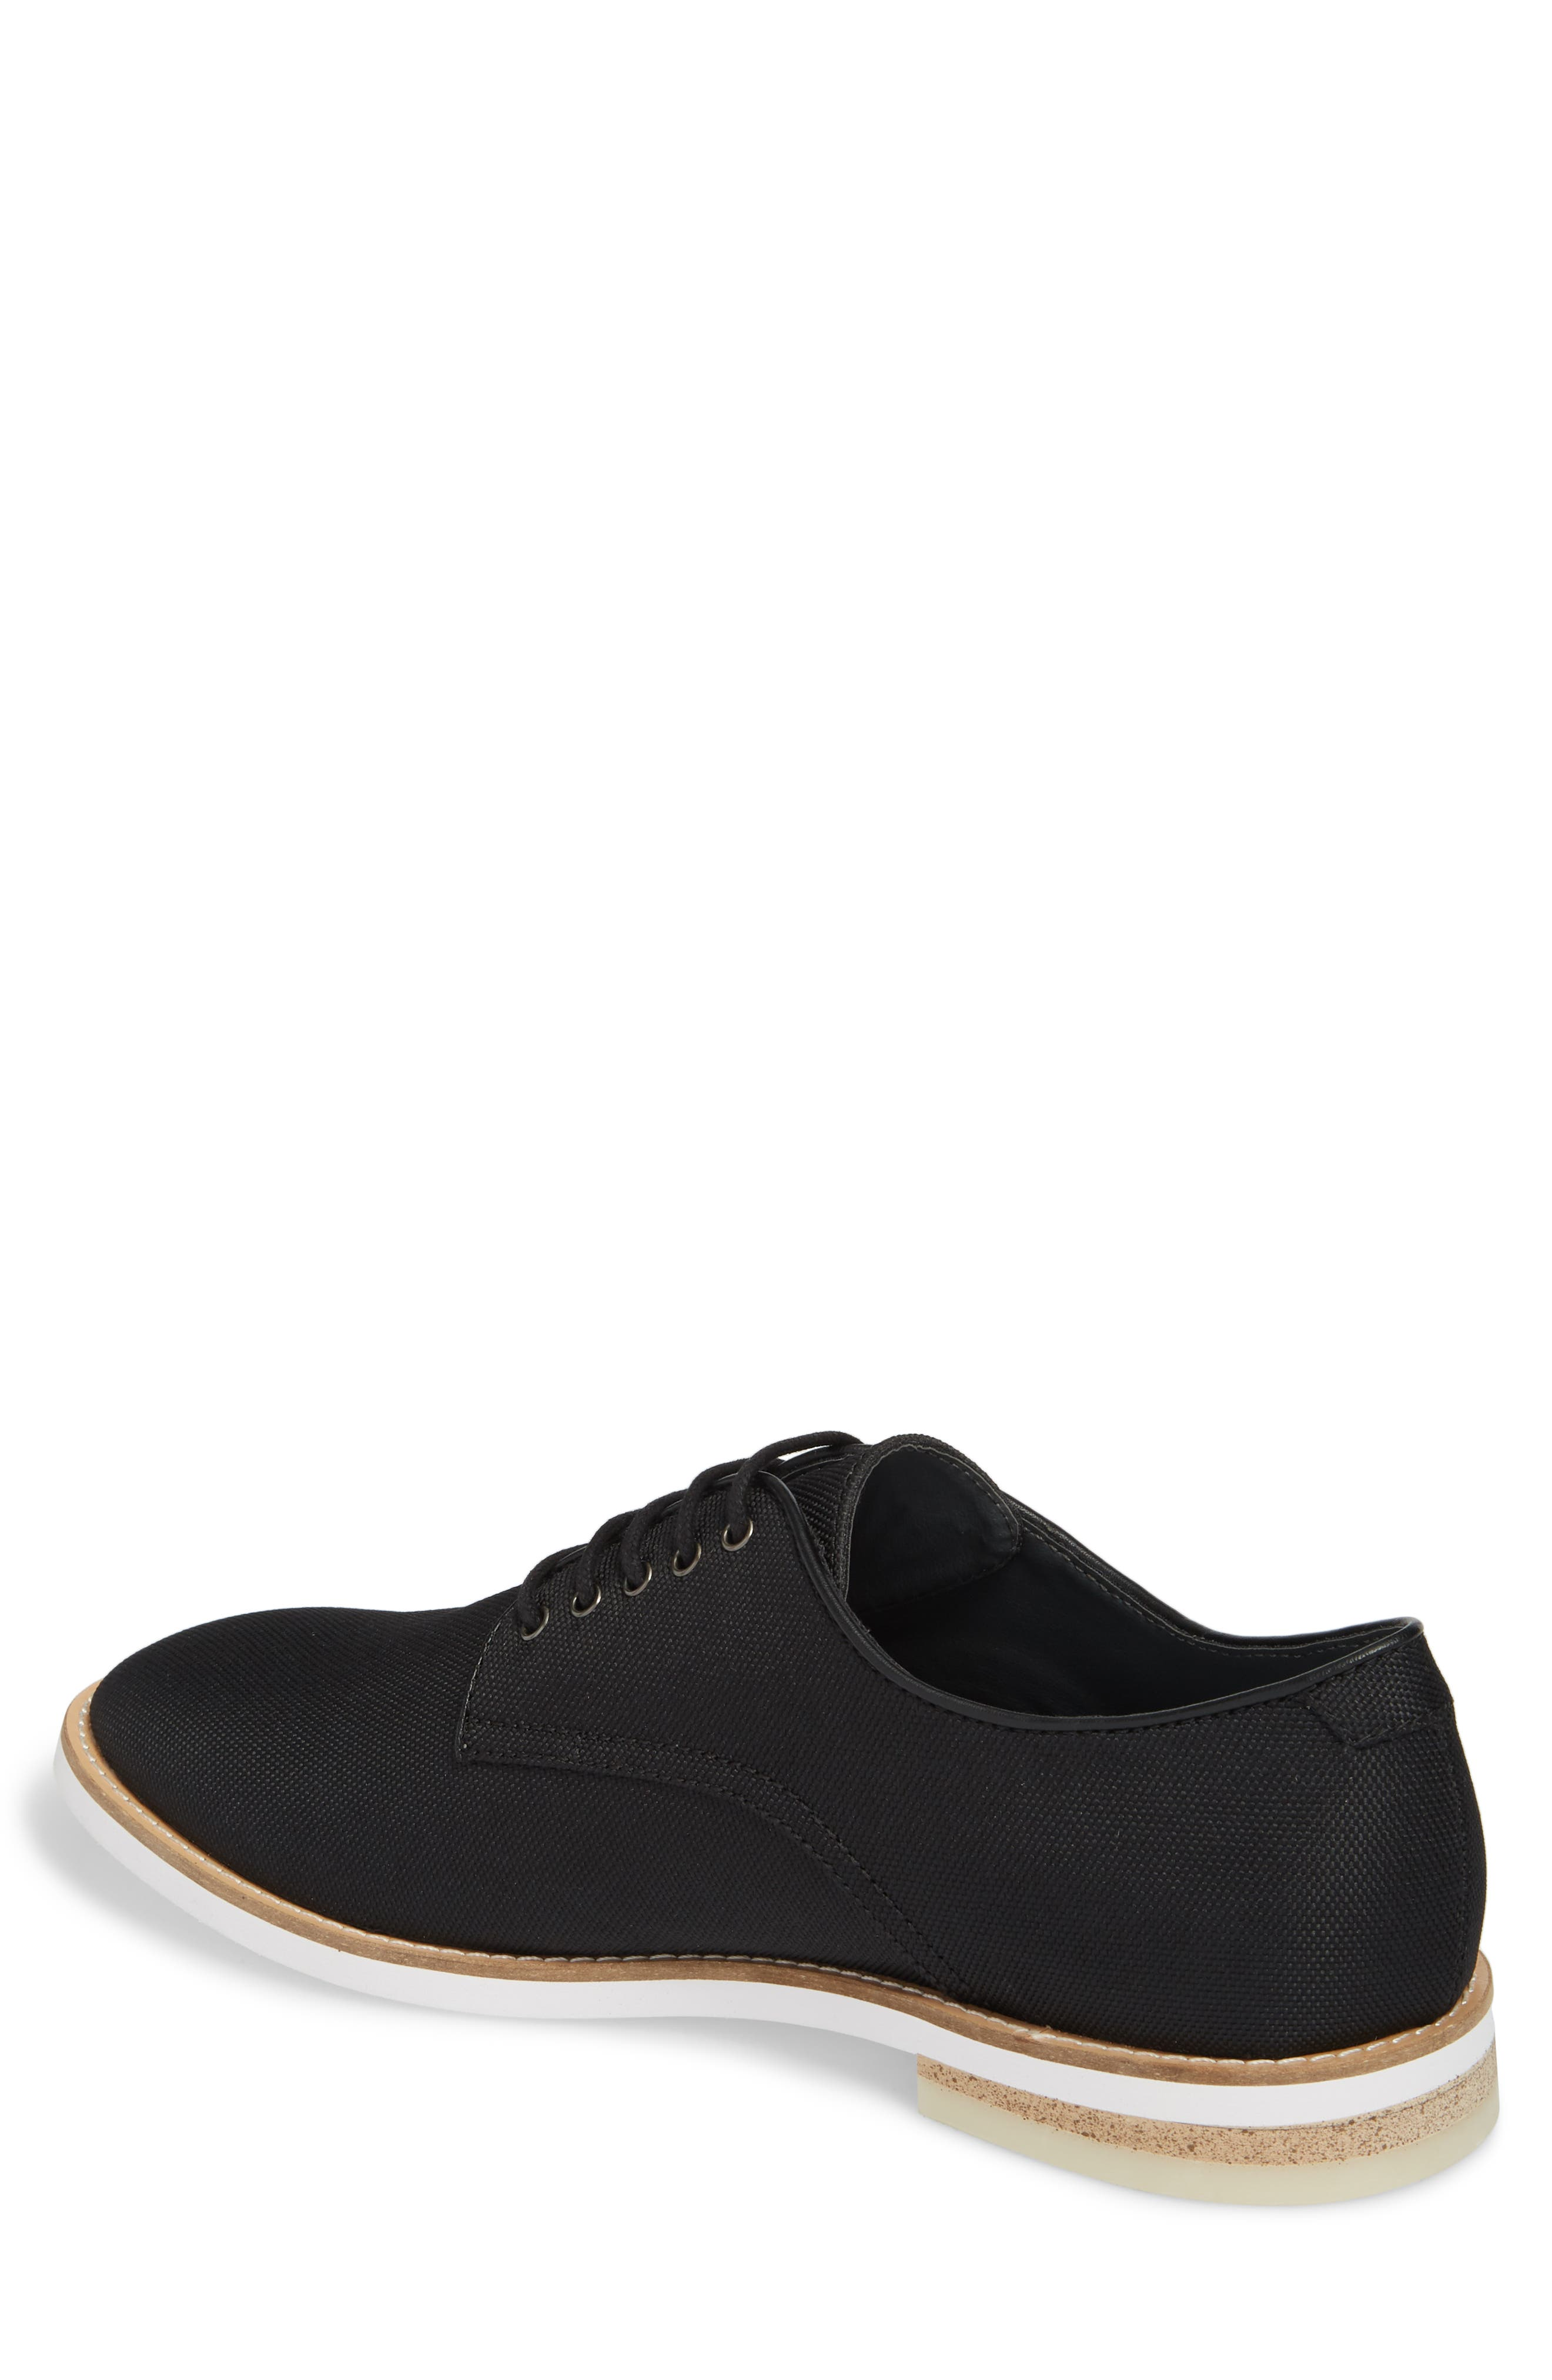 Atlee Plain Toe Derby,                             Alternate thumbnail 2, color,                             BLACK SYNTHETIC